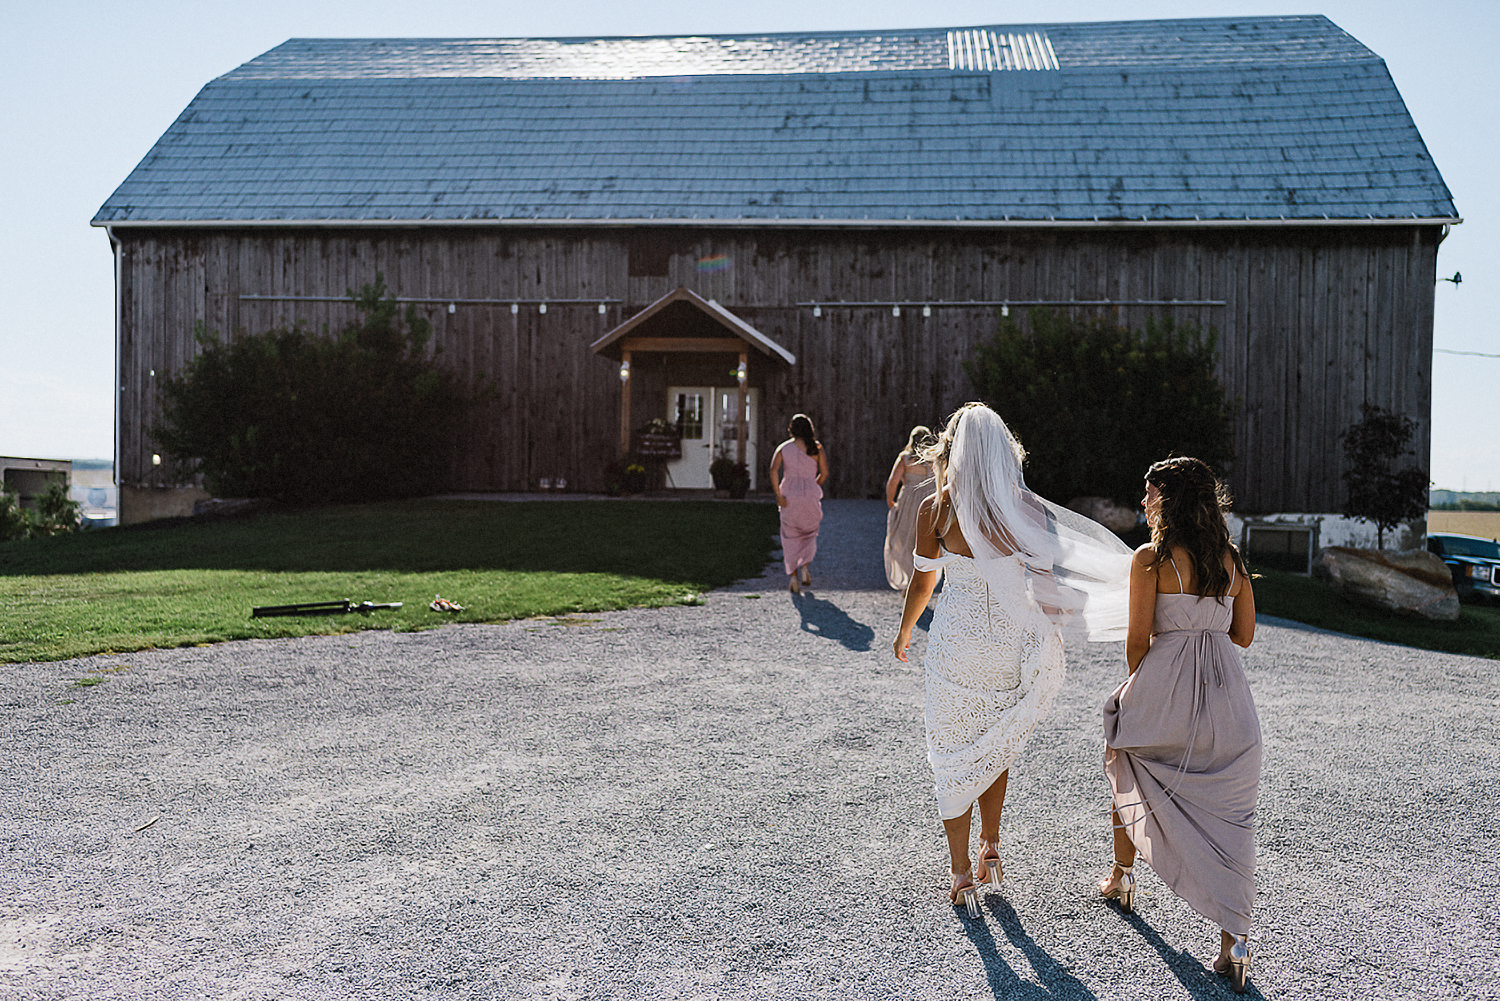 dowswell-barn-wedding-beaverton-best-wedding-photographers-toronto-moody-style-candid-photojounalistic-approach-intimate-vintage-farm-wedding-Farm-wedding-bride-entrance.jpg